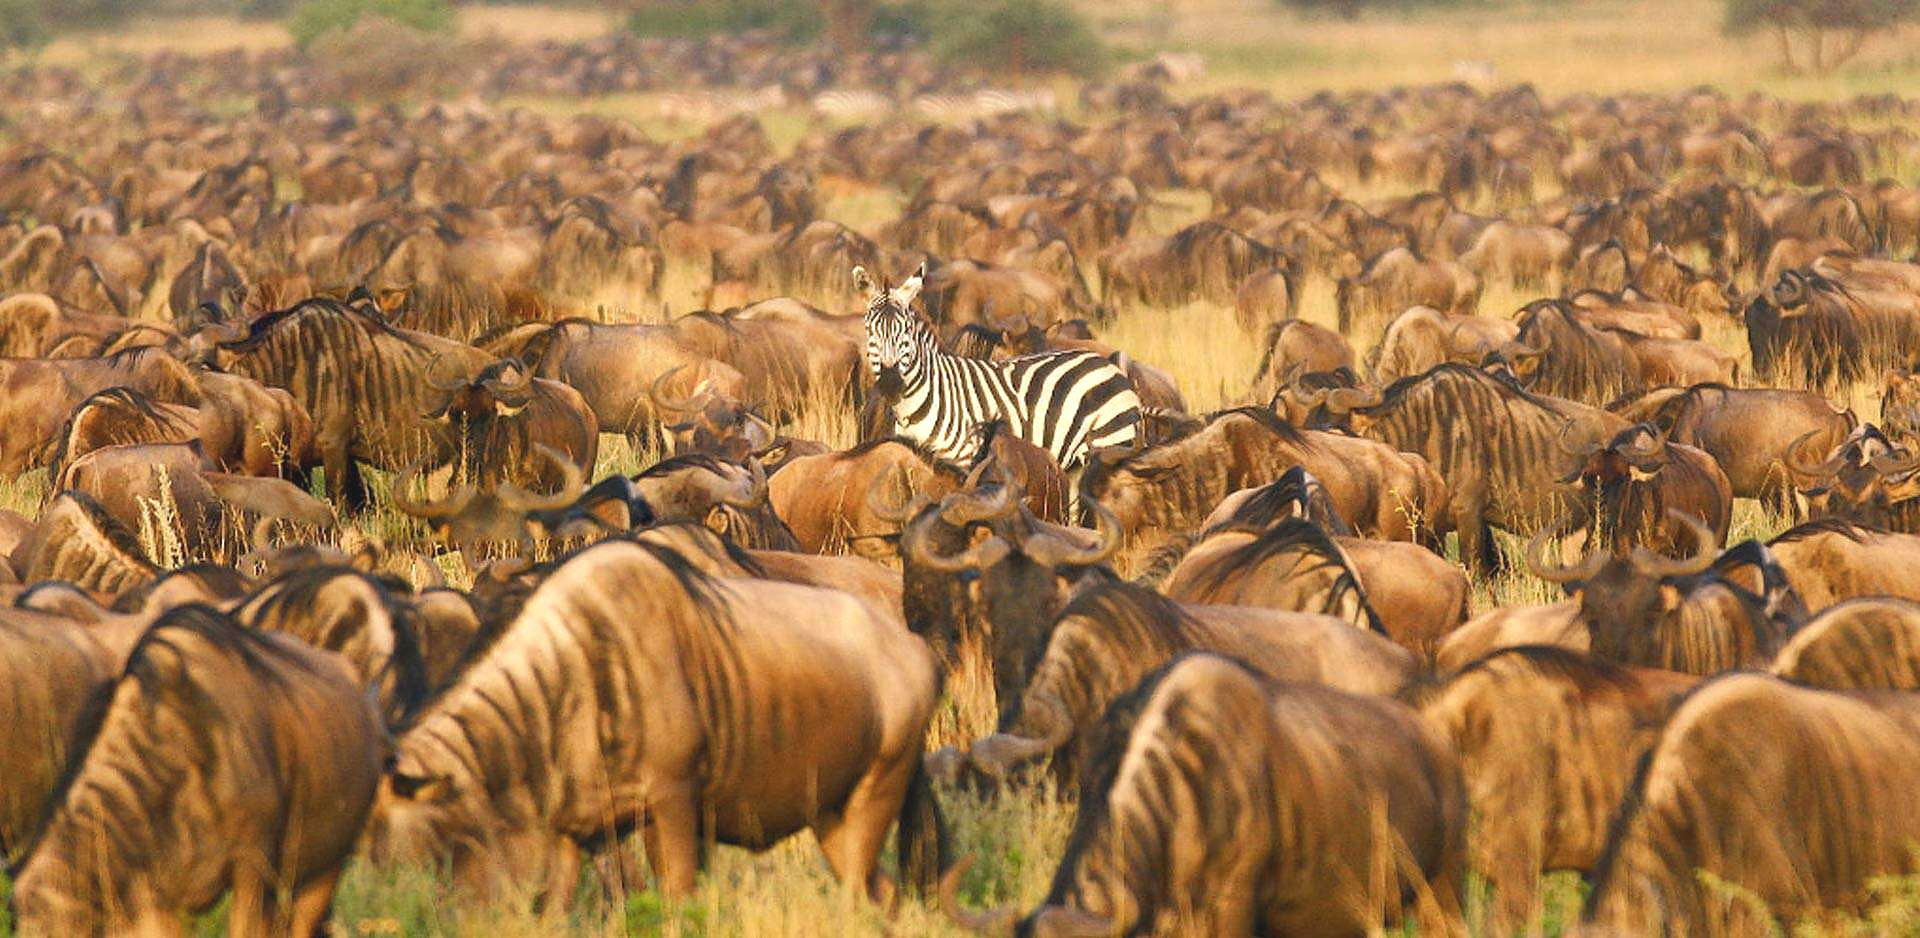 The Serengeti Migration